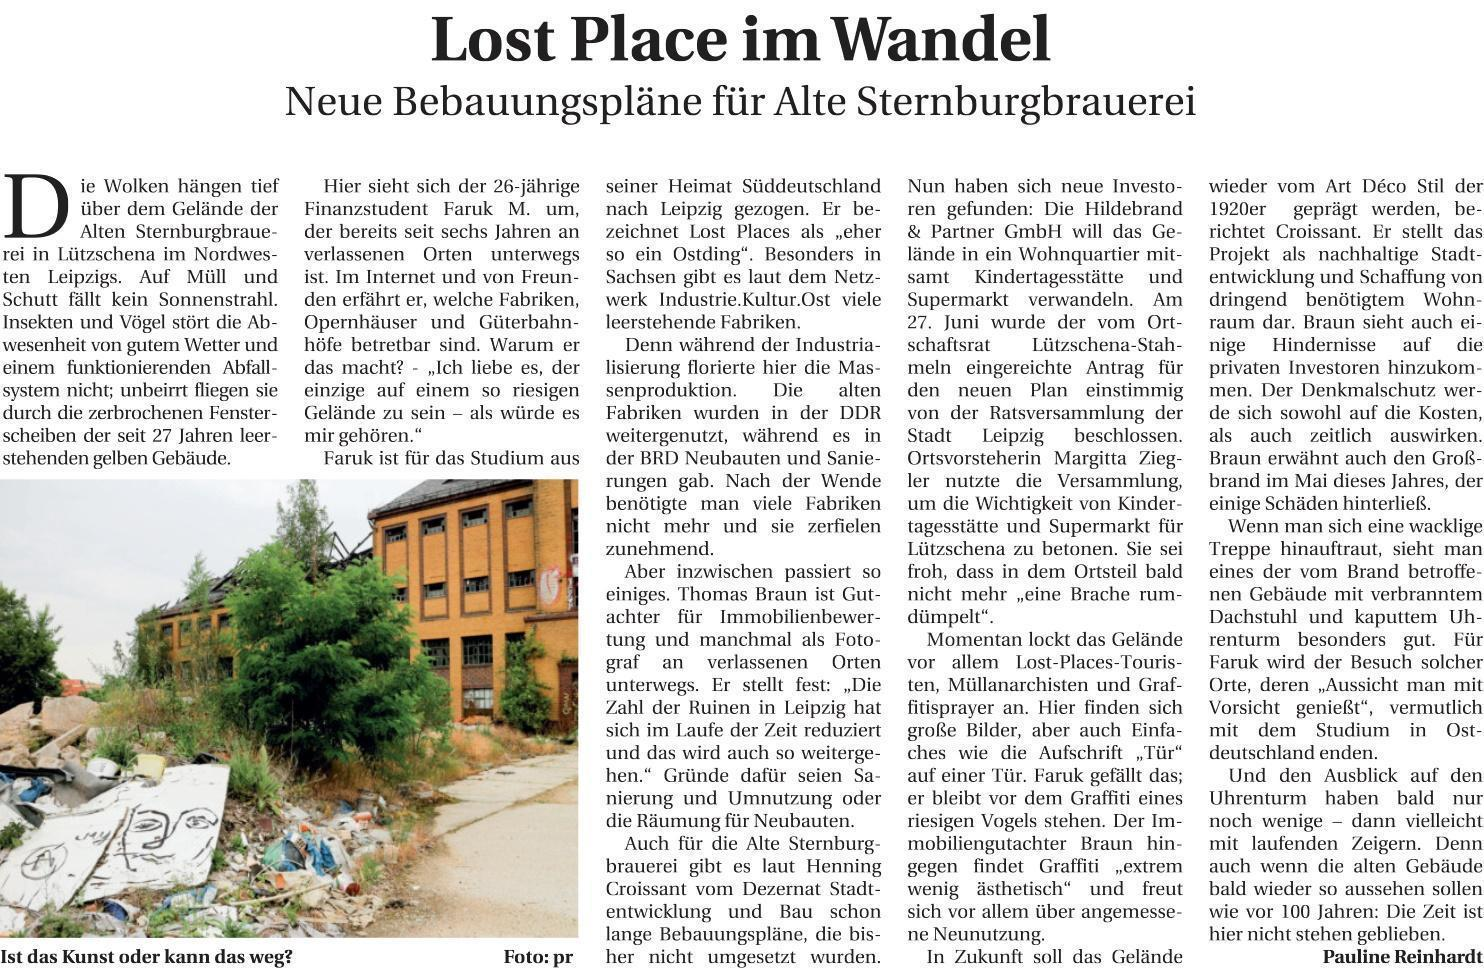 lost place im wandel student 18 04